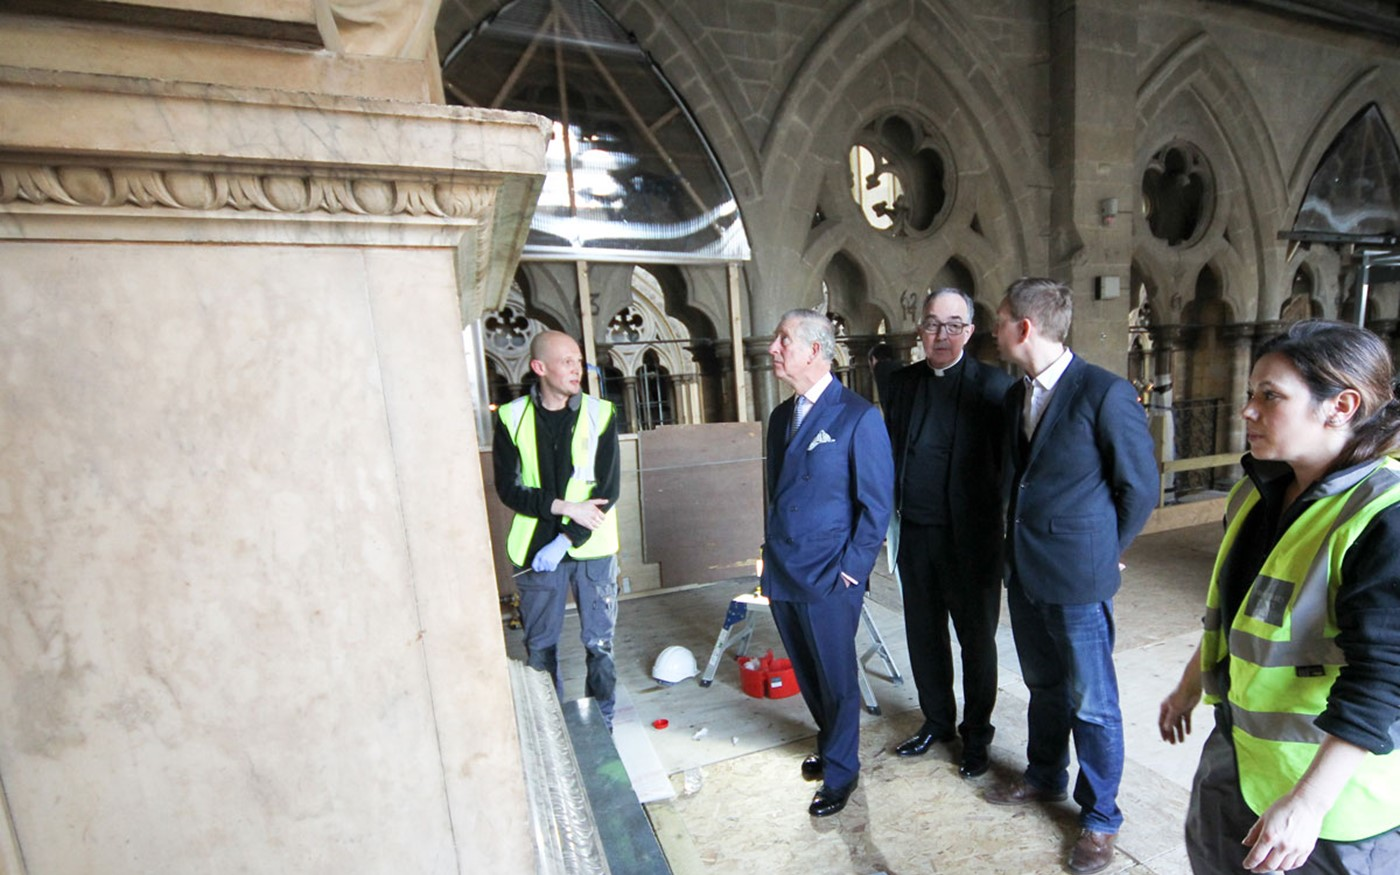 HRH The Prince of Wales views the conservation work being undertaken, and speaks to conservators